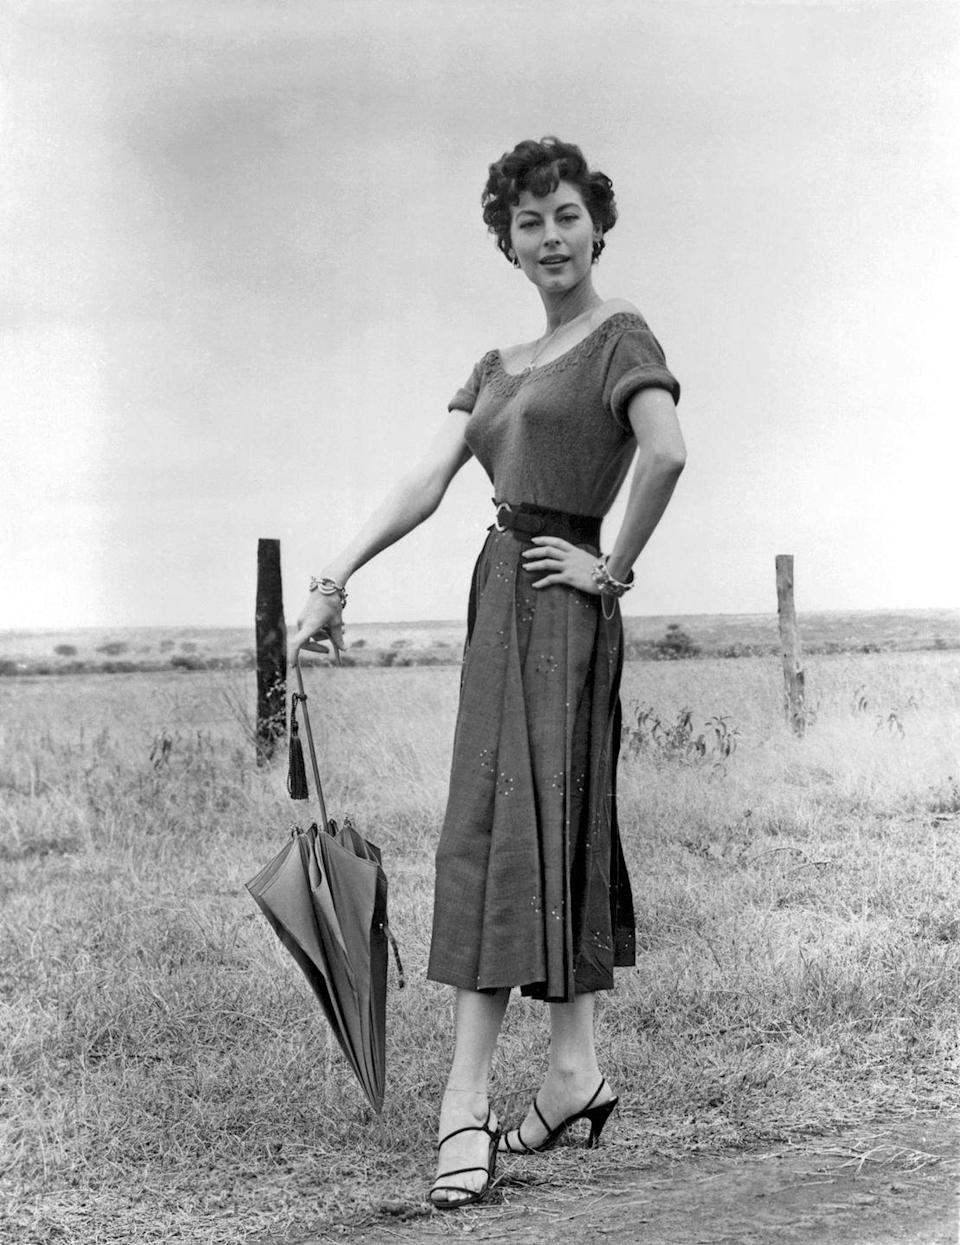 <p>Gardner poses jauntily with an umbrella in Africa while filming director John Ford's <em>Mogambo</em> and wears a sweater with rolled sleeves, full skirt, and—always the lady—a pair of heels.</p>